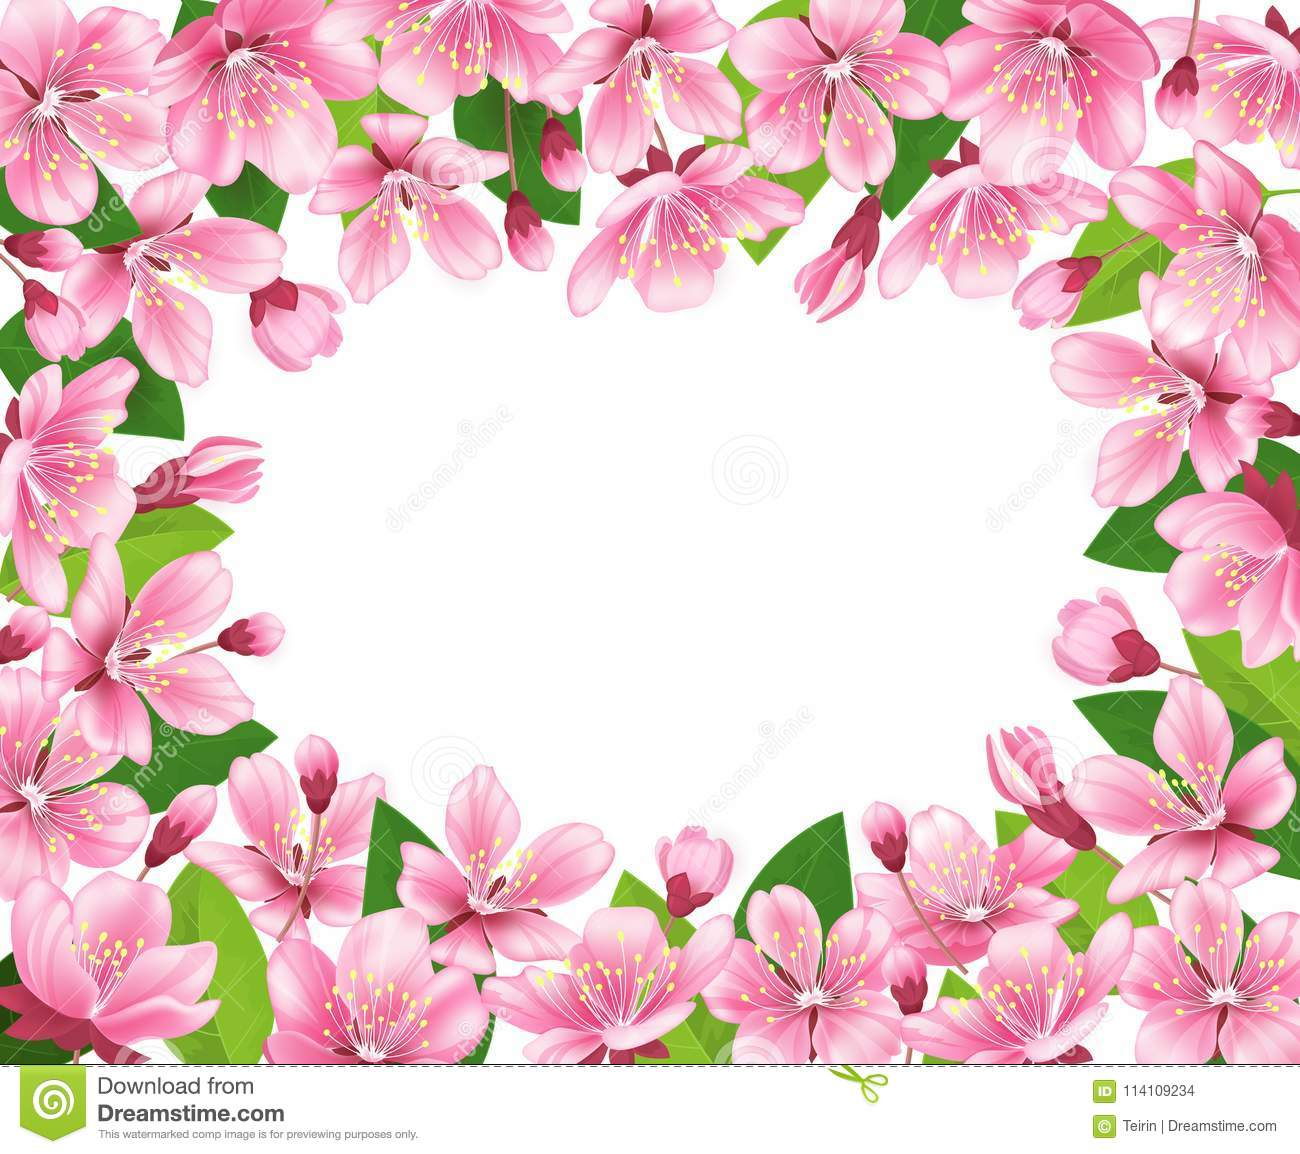 Cherry Blossom Background Pink Spring Flowers Frame Cartoon Style